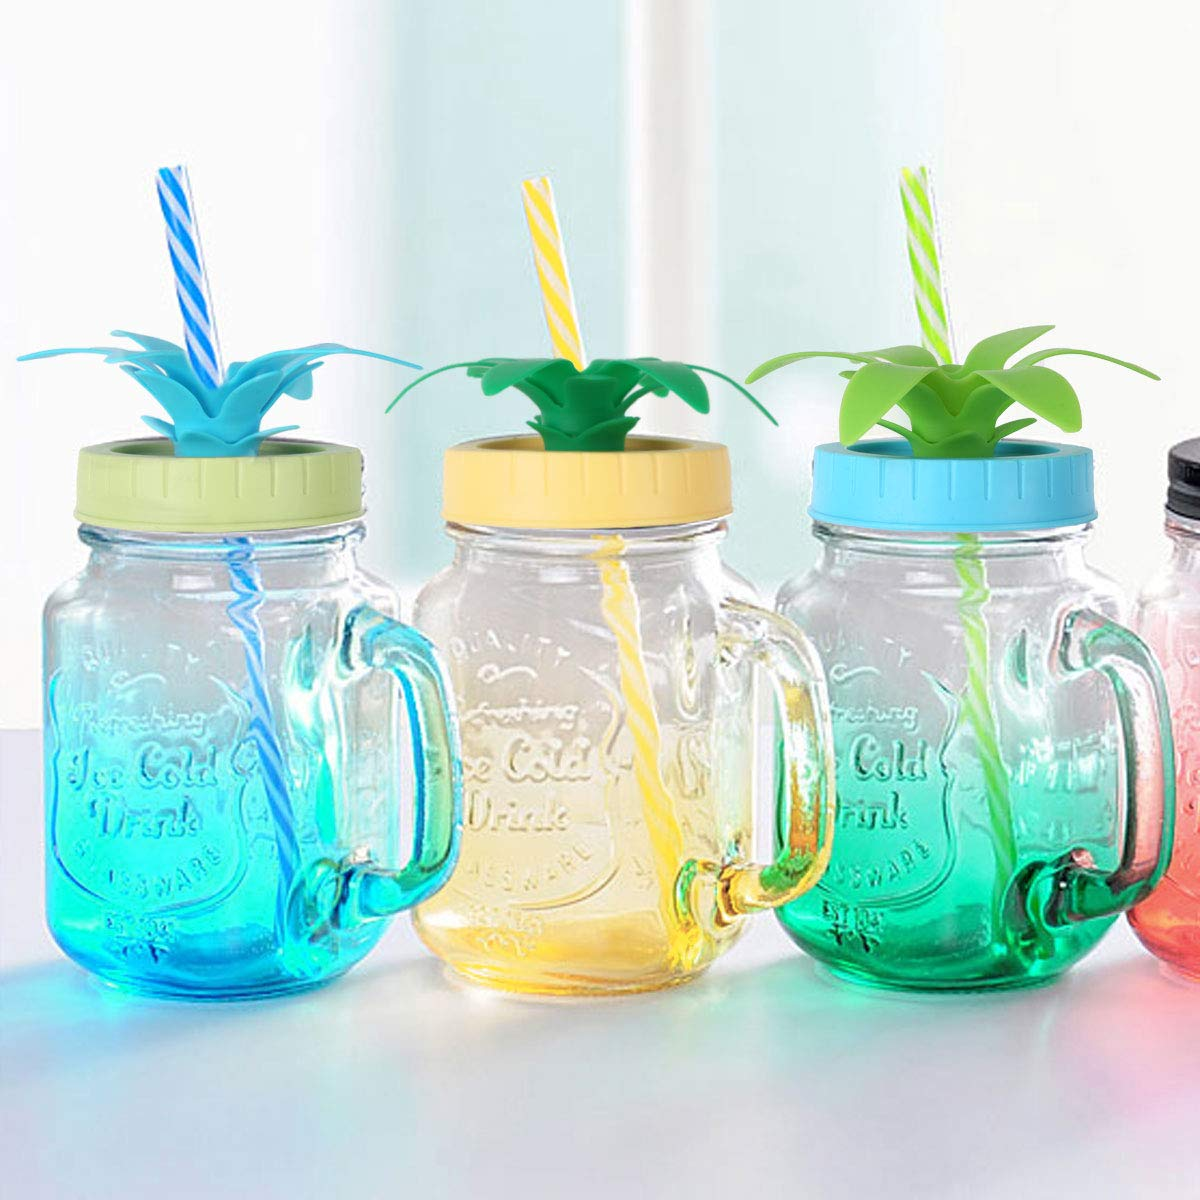 4Pcs Bottle Lid Cap Cover Plastic with Pineapple Shape Straw Hole for Mason Jars